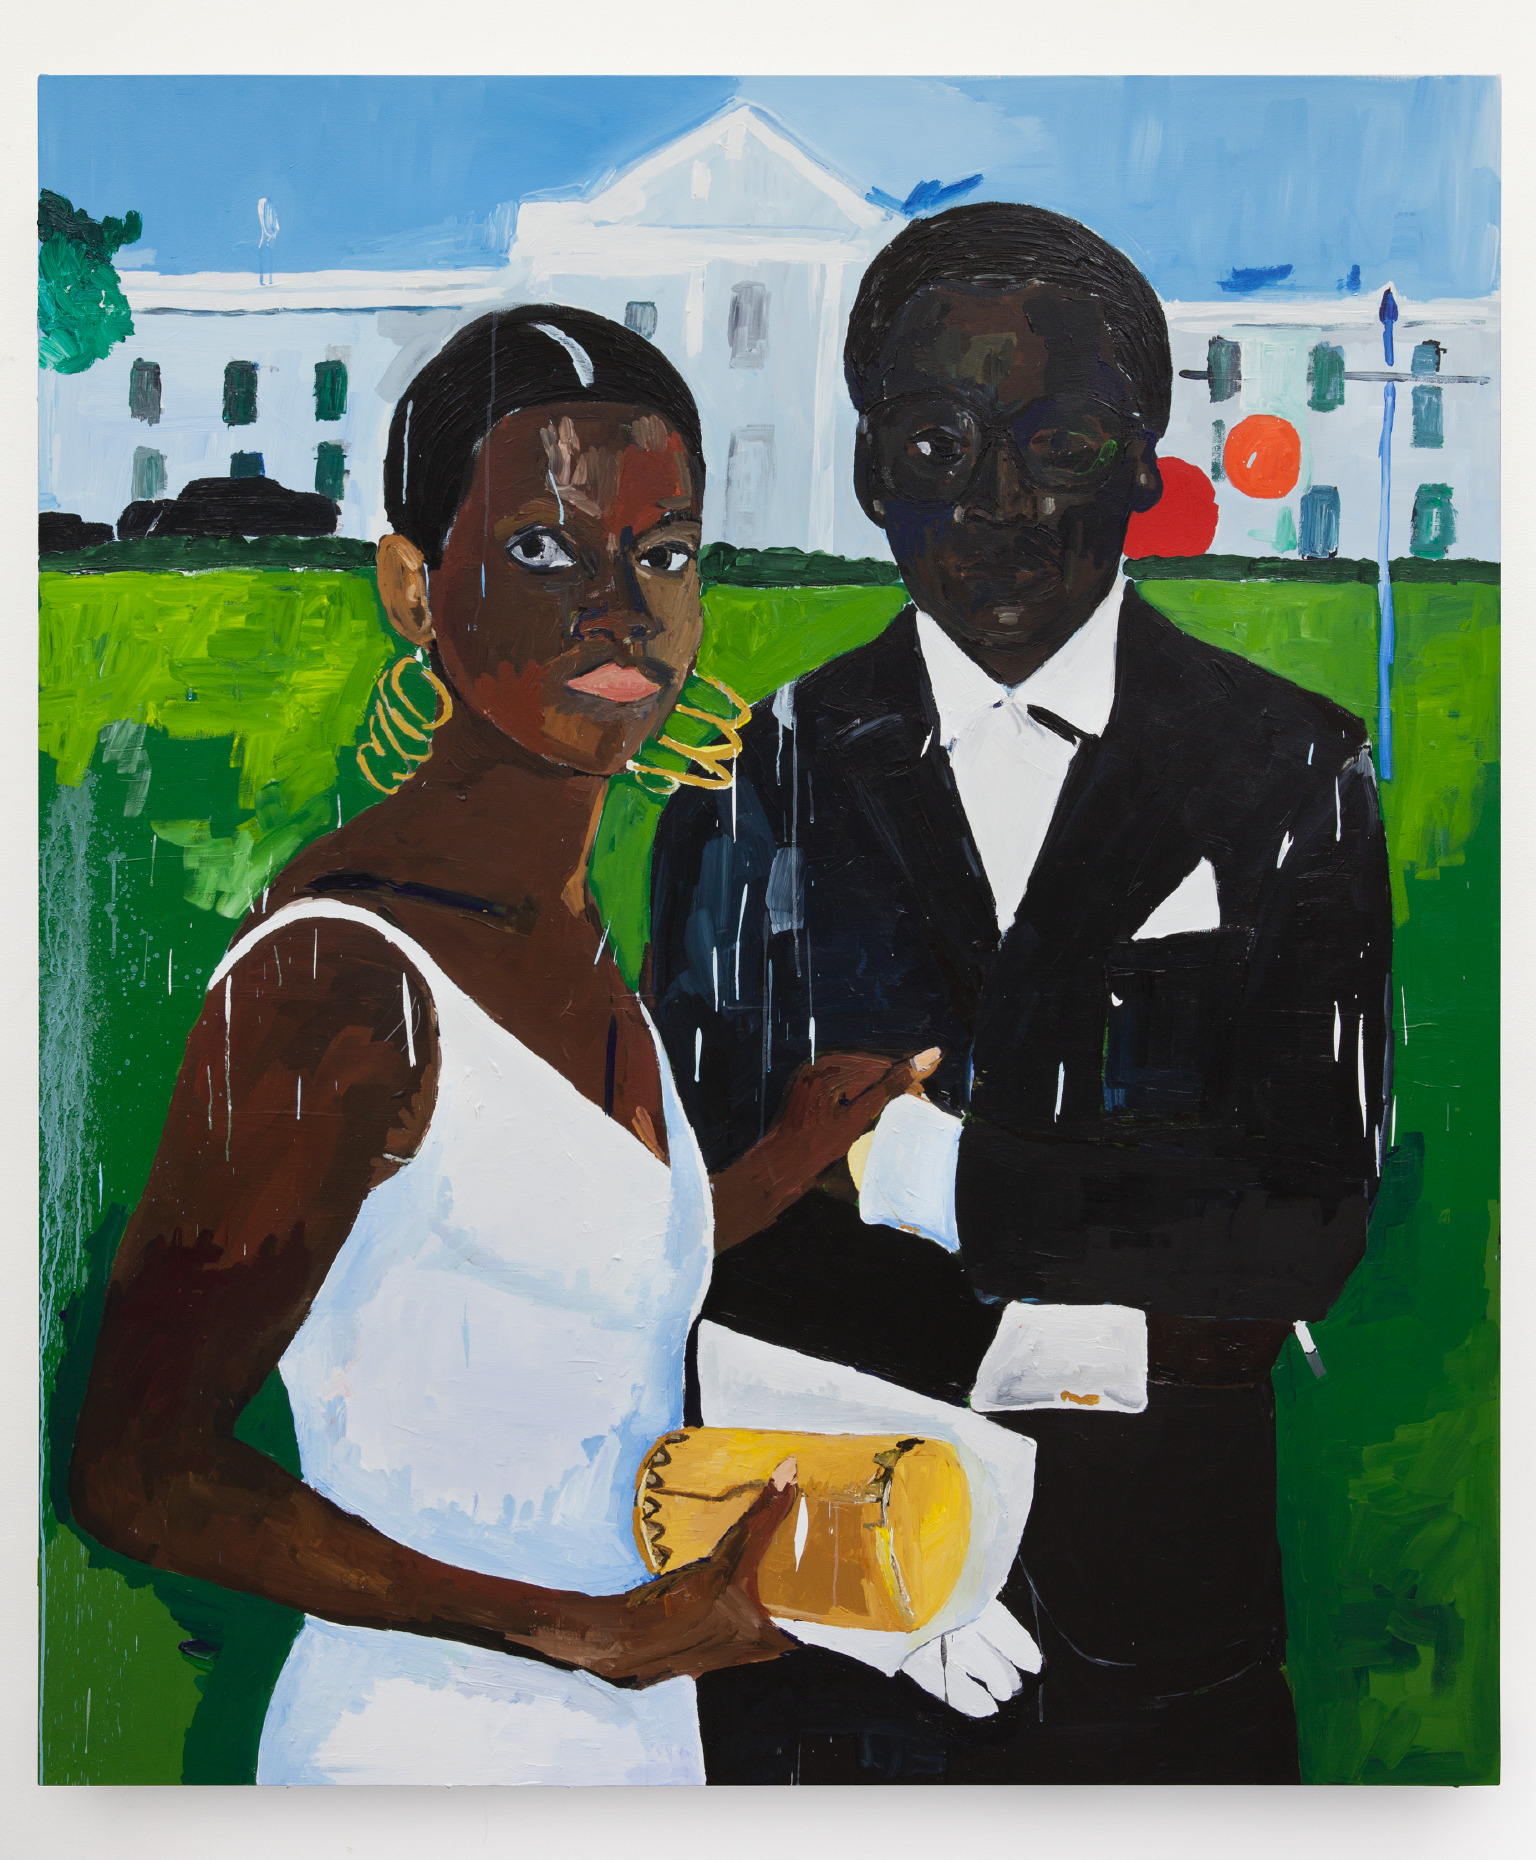 Henry Taylor  Cicely and Miles Visit the Obamas , 2017 , Acrylic on canvas ,  84 x 72 inches (213.4 x 182.9 centimeters)©Henry Taylor,Courtesy of the artist and Blum &Poe,Los Angeles/New York/Tokyo